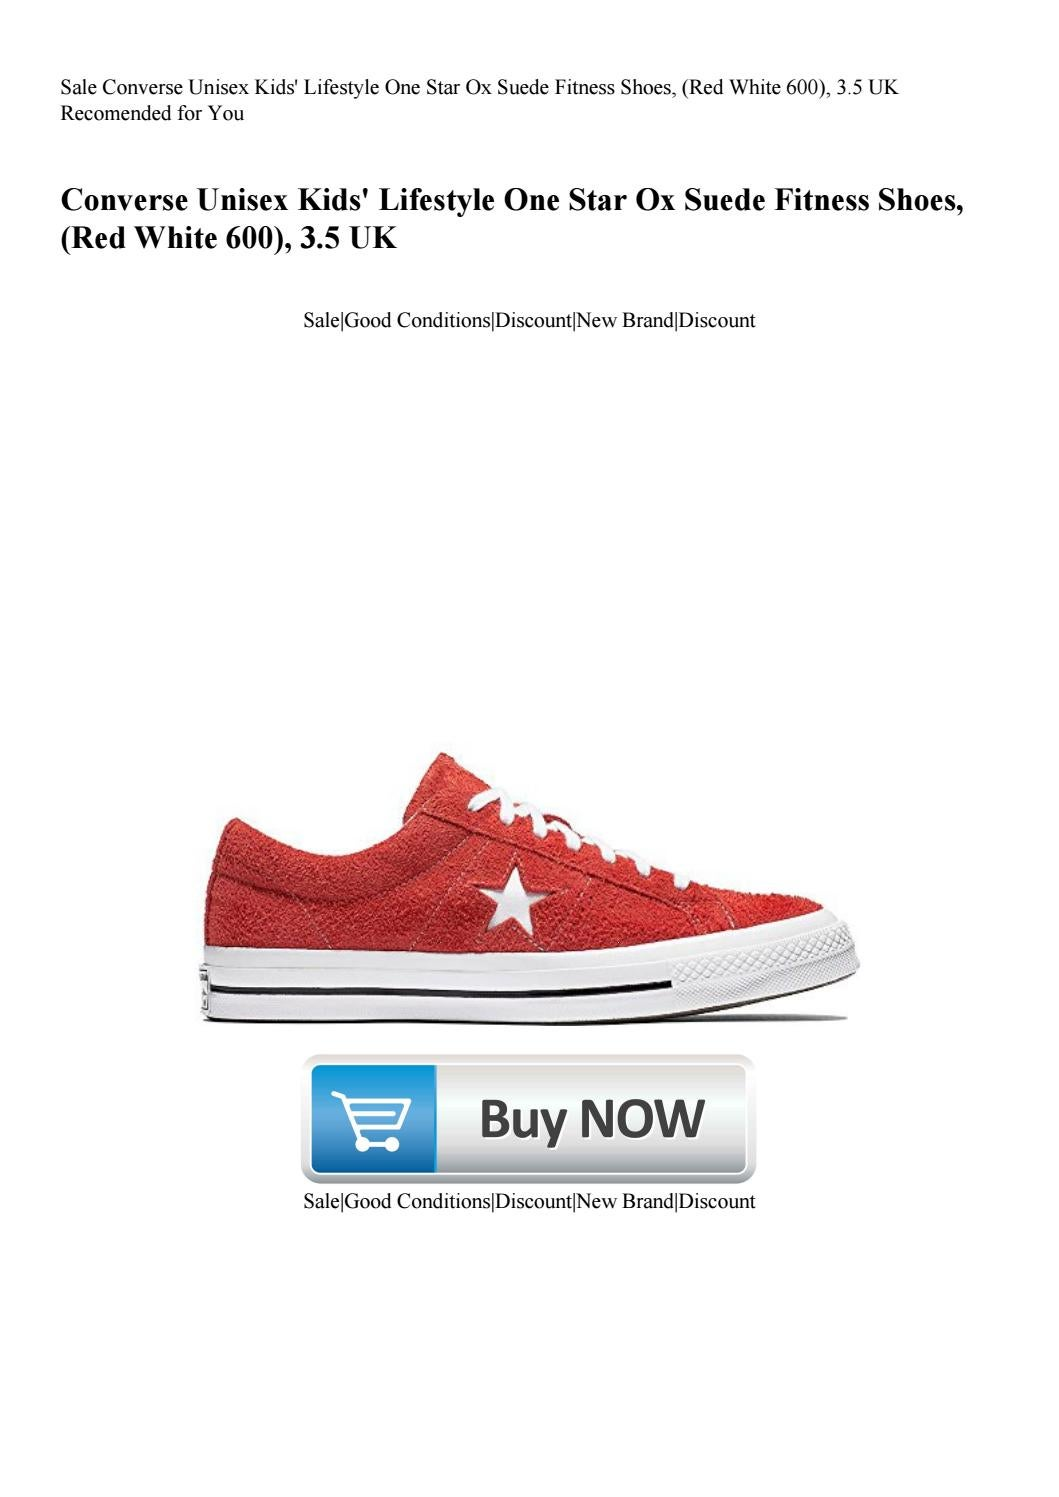 converse lifestyle one star ox suede